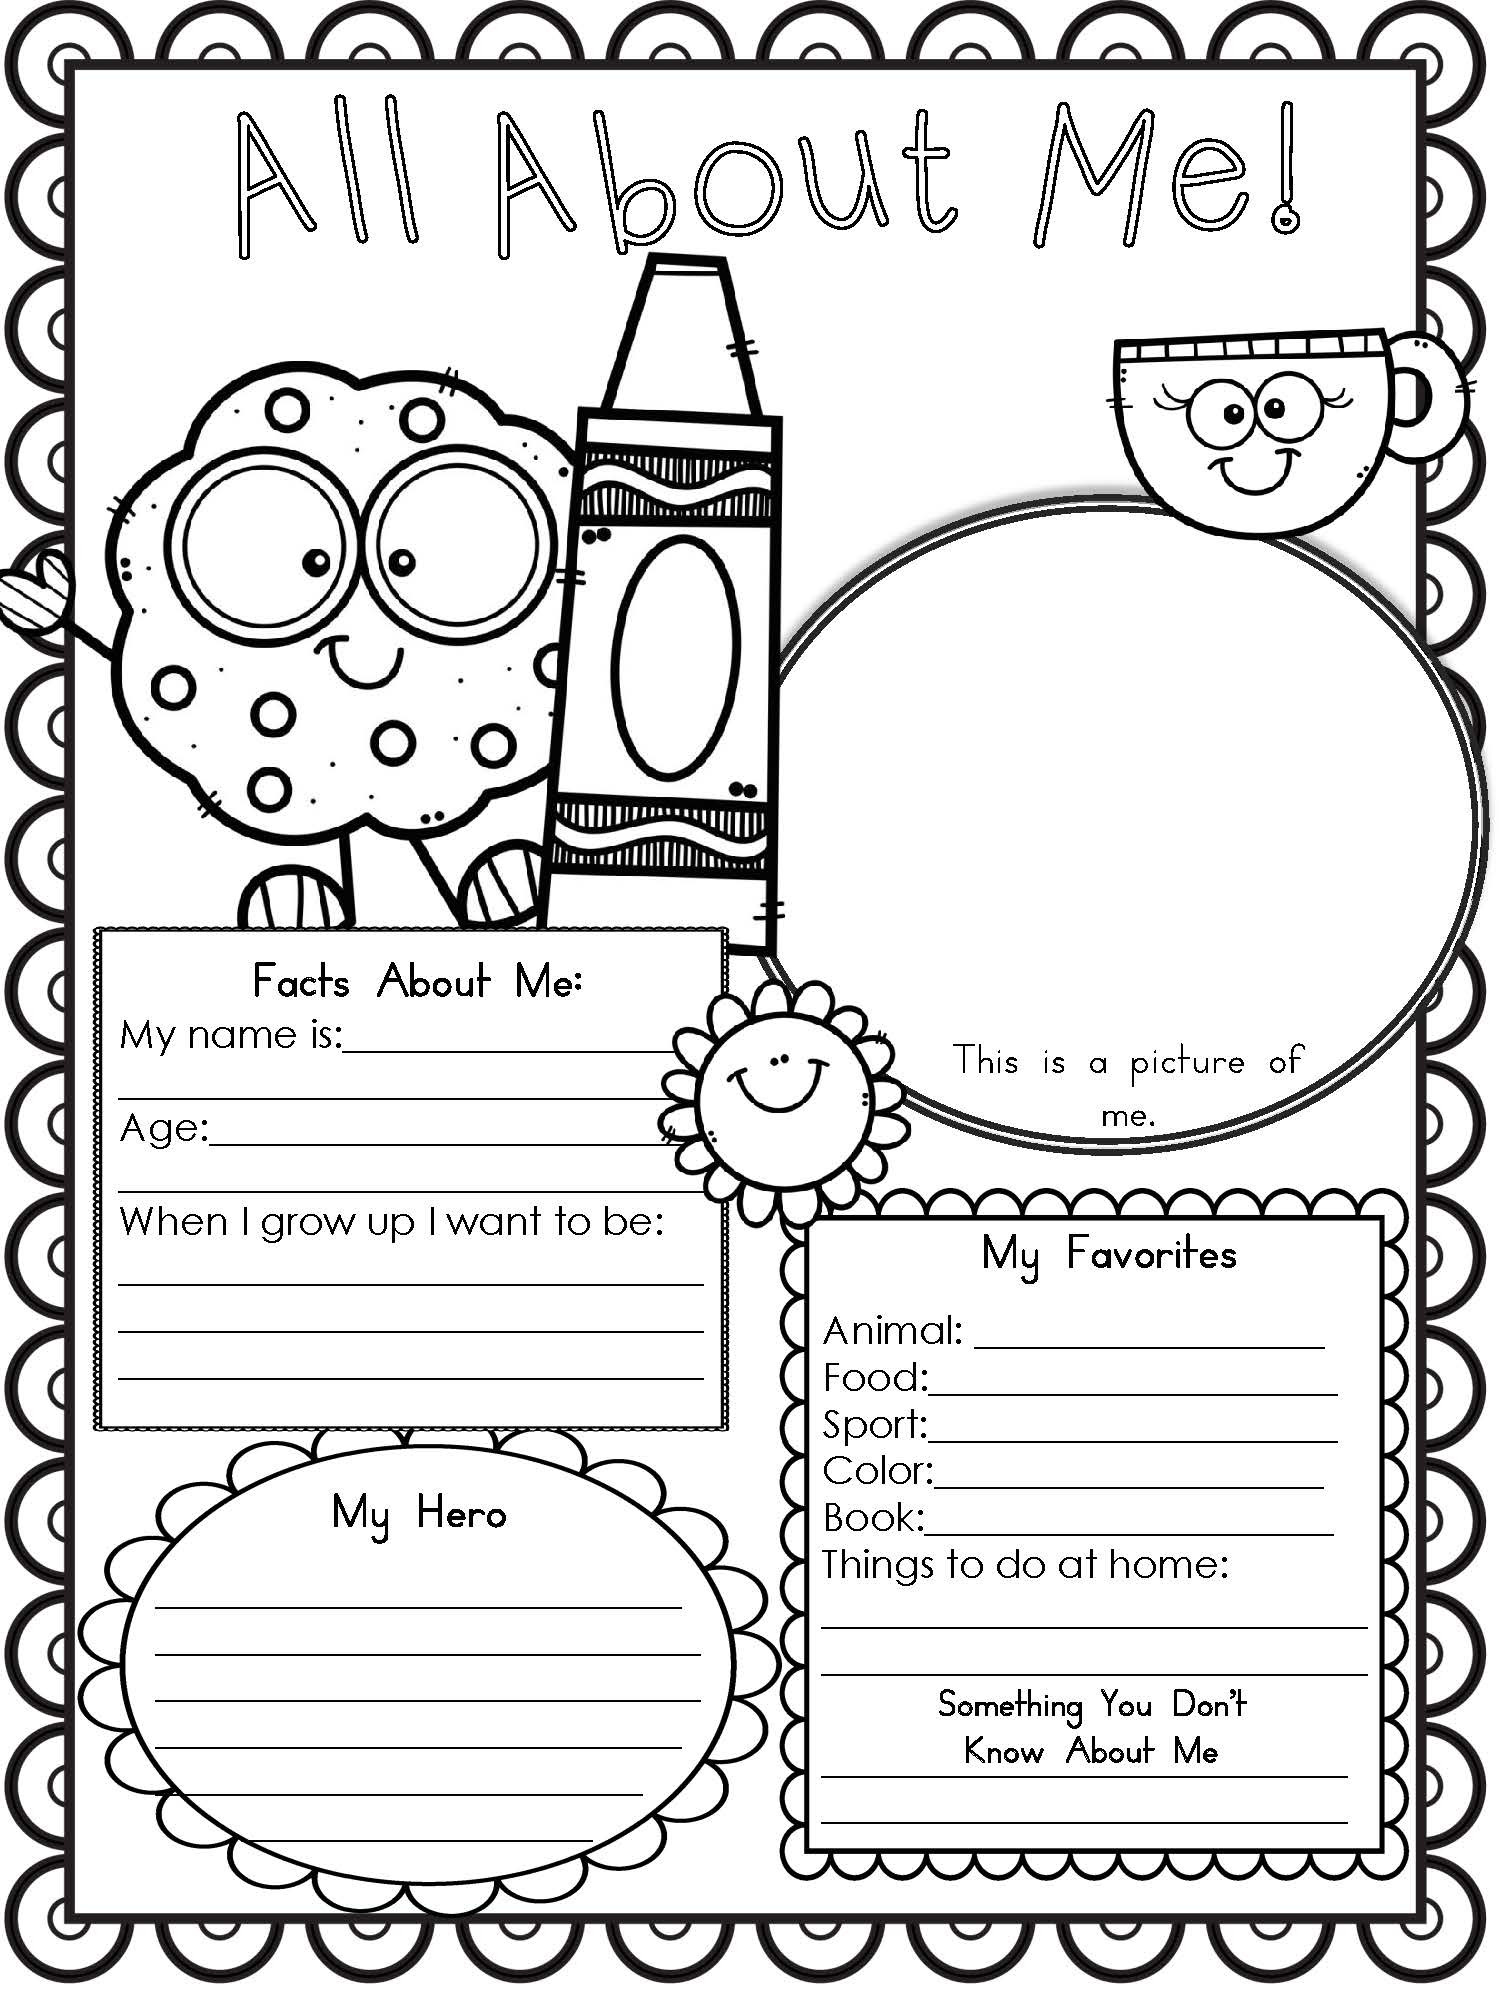 All About Me Worksheet Free Printable All About Me Worksheet Modern Homeschool Family